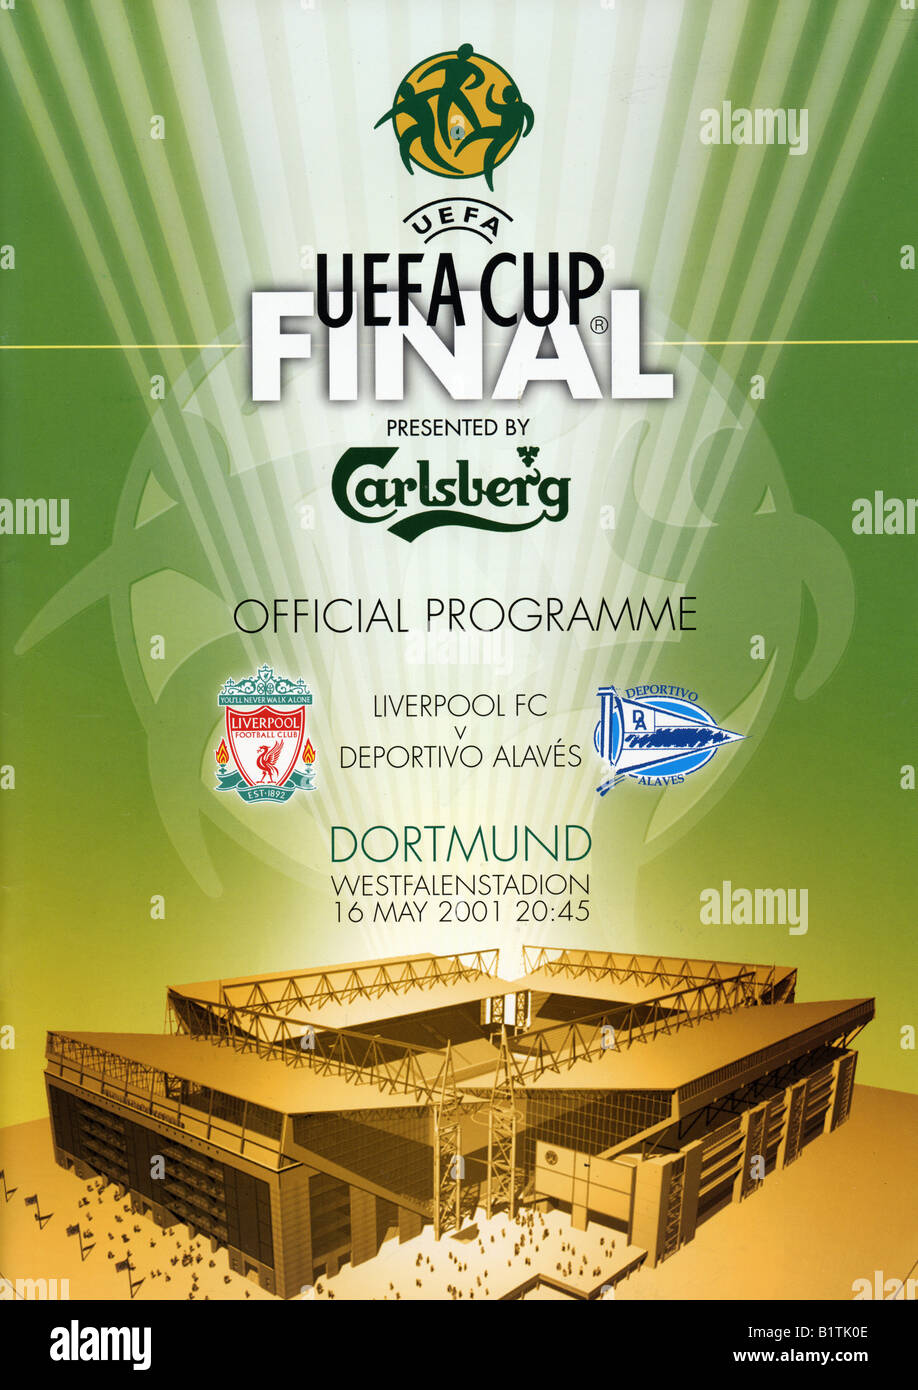 UEFA Cup Final Football Programme 16 May 2001 Liverpool FC v Deportivo Alavés FOR EDITORIAL USE ONLY - Stock Image